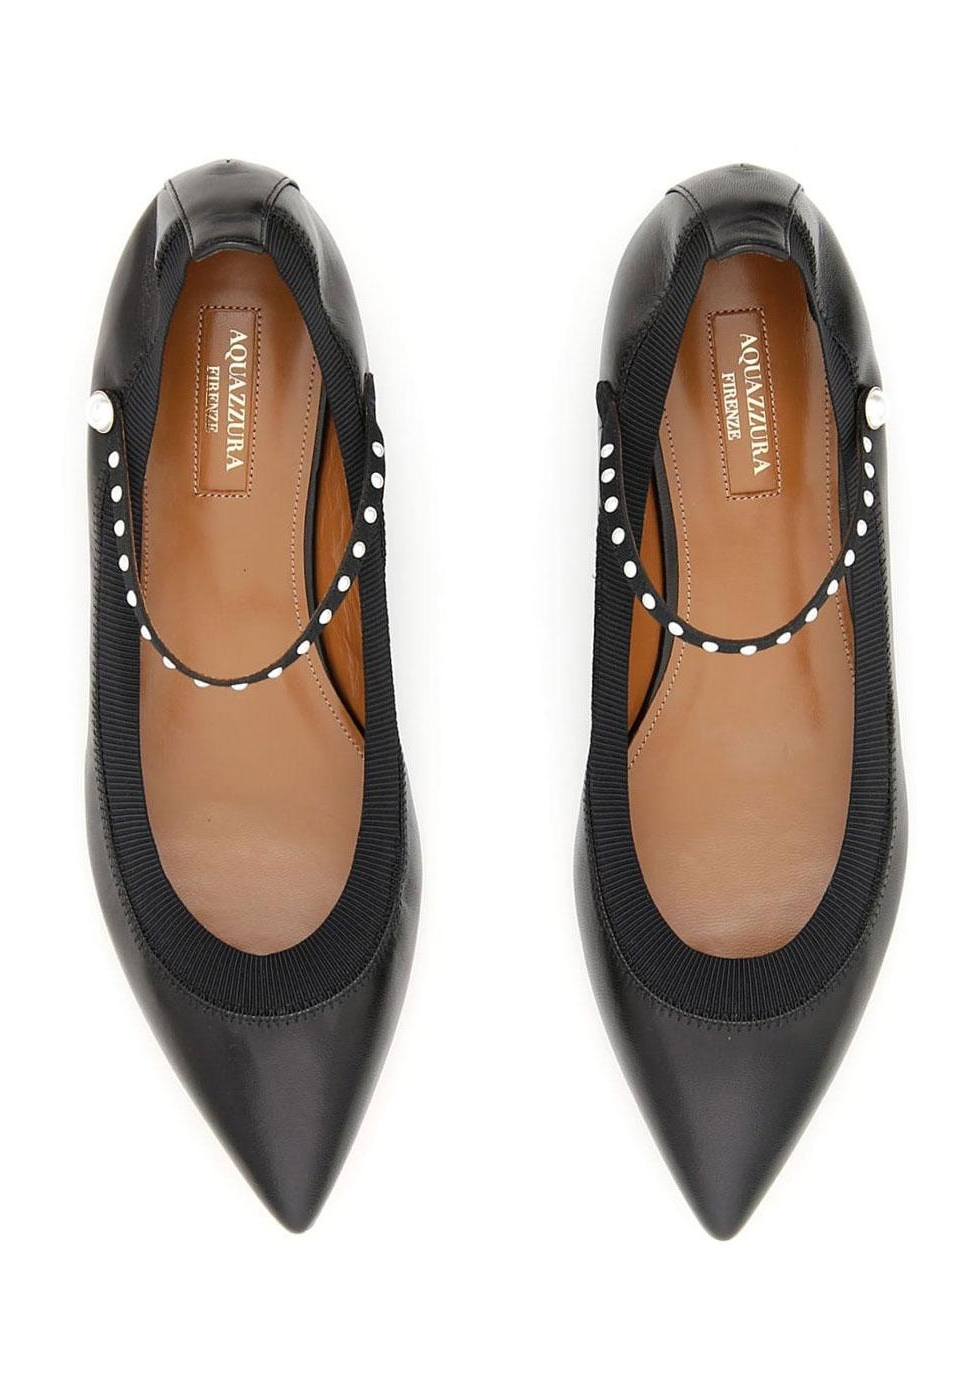 Italian Flats Leather Shoes Ballerina